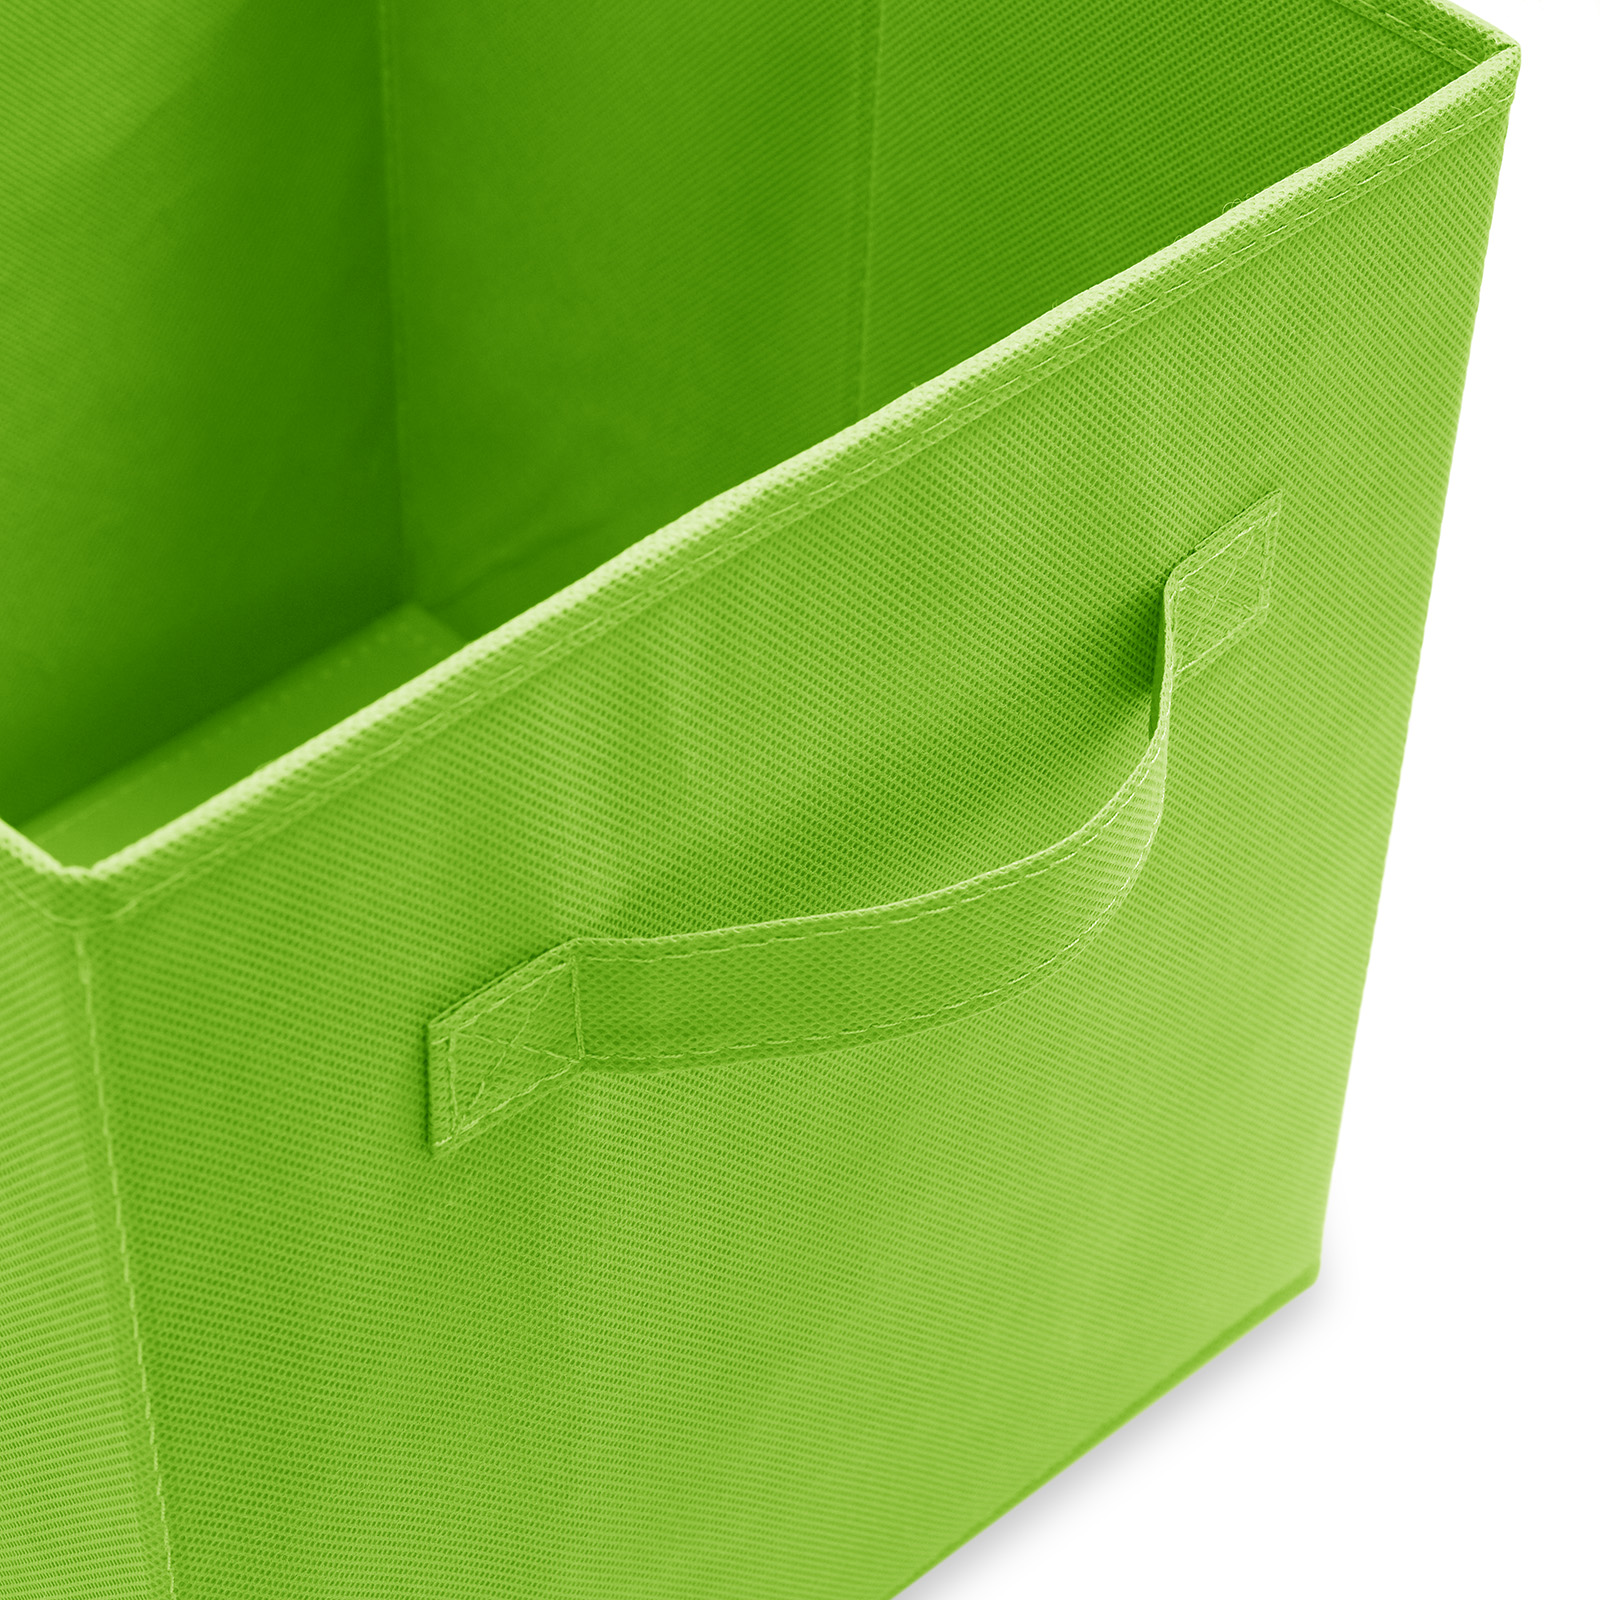 6-Collapsible-Foldable-Cloth-Fabric-Cubby-Cube-Storage-Bins-Baskets-for-Shelves thumbnail 46